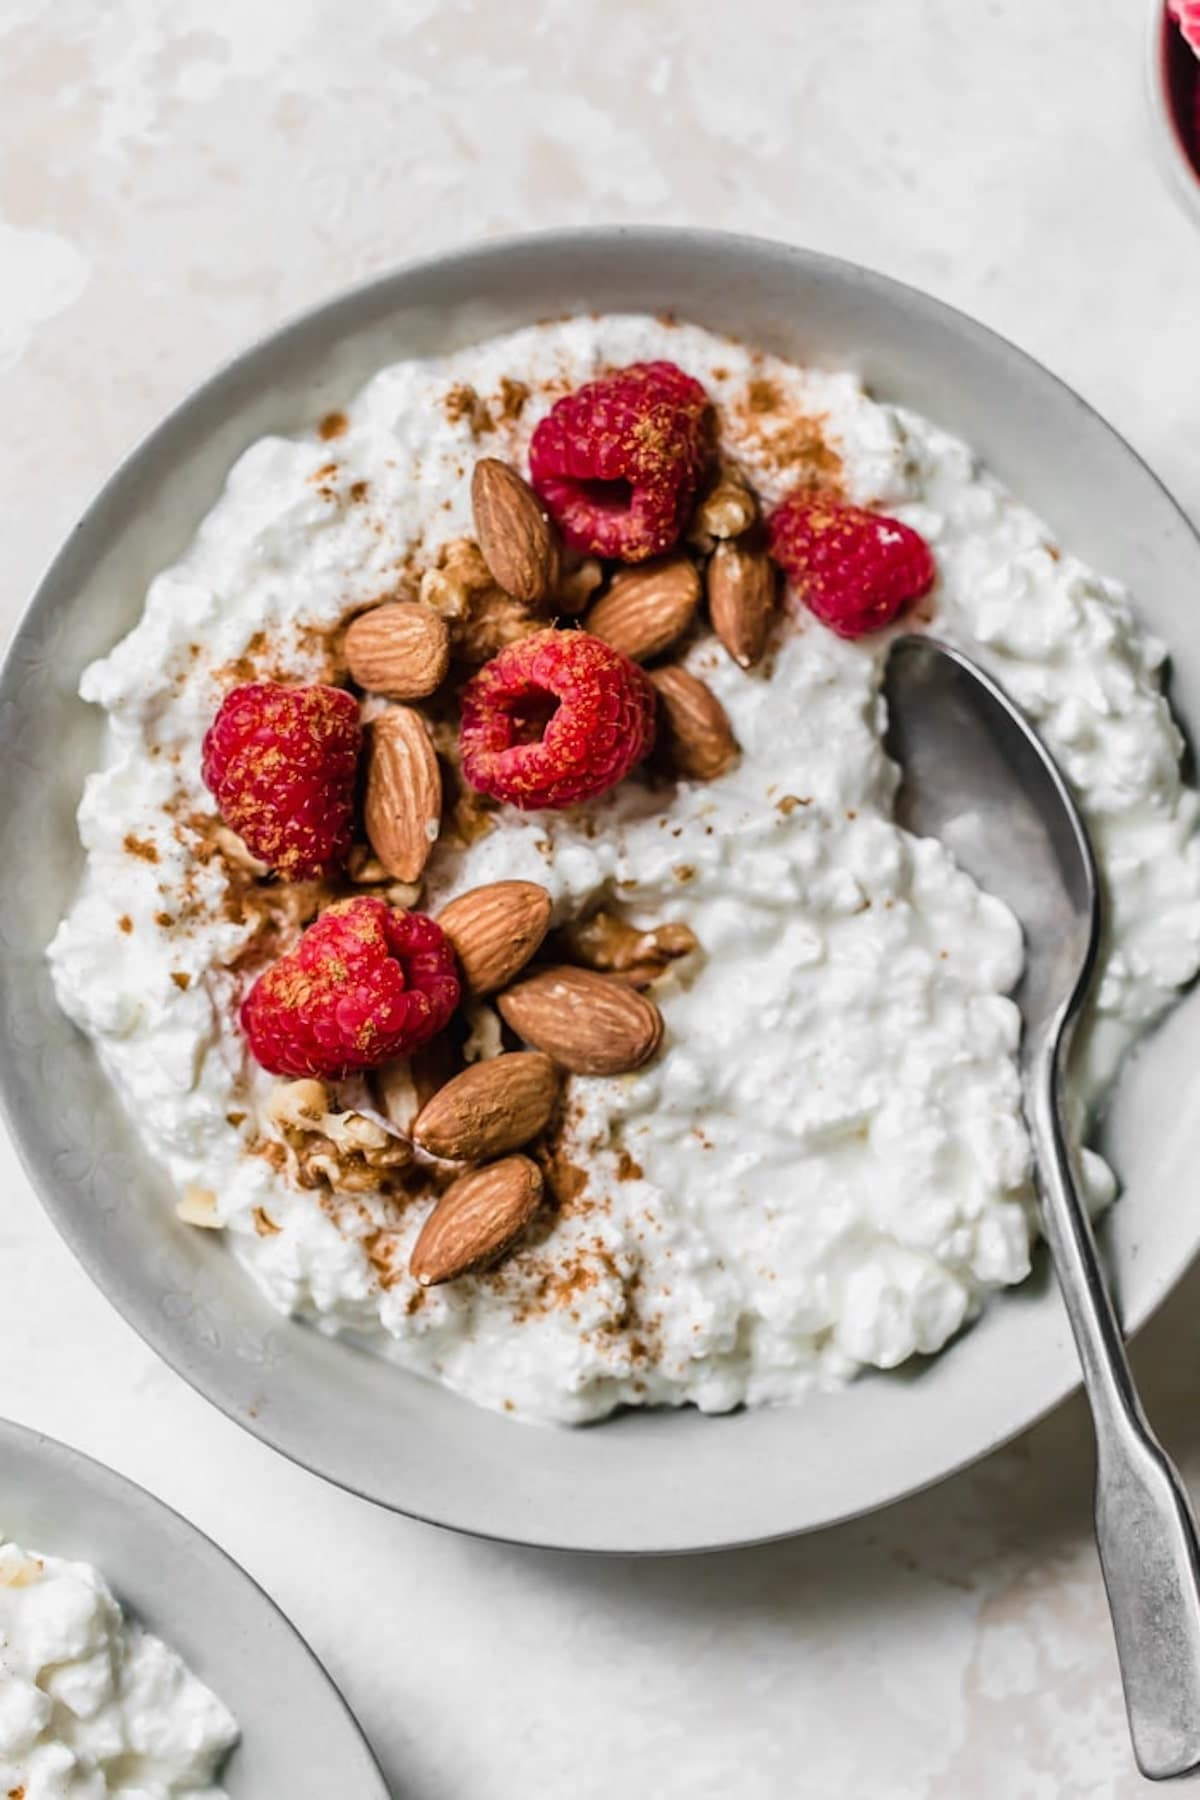 cottage cheese in a gray bowl topped with almonds and raspberries